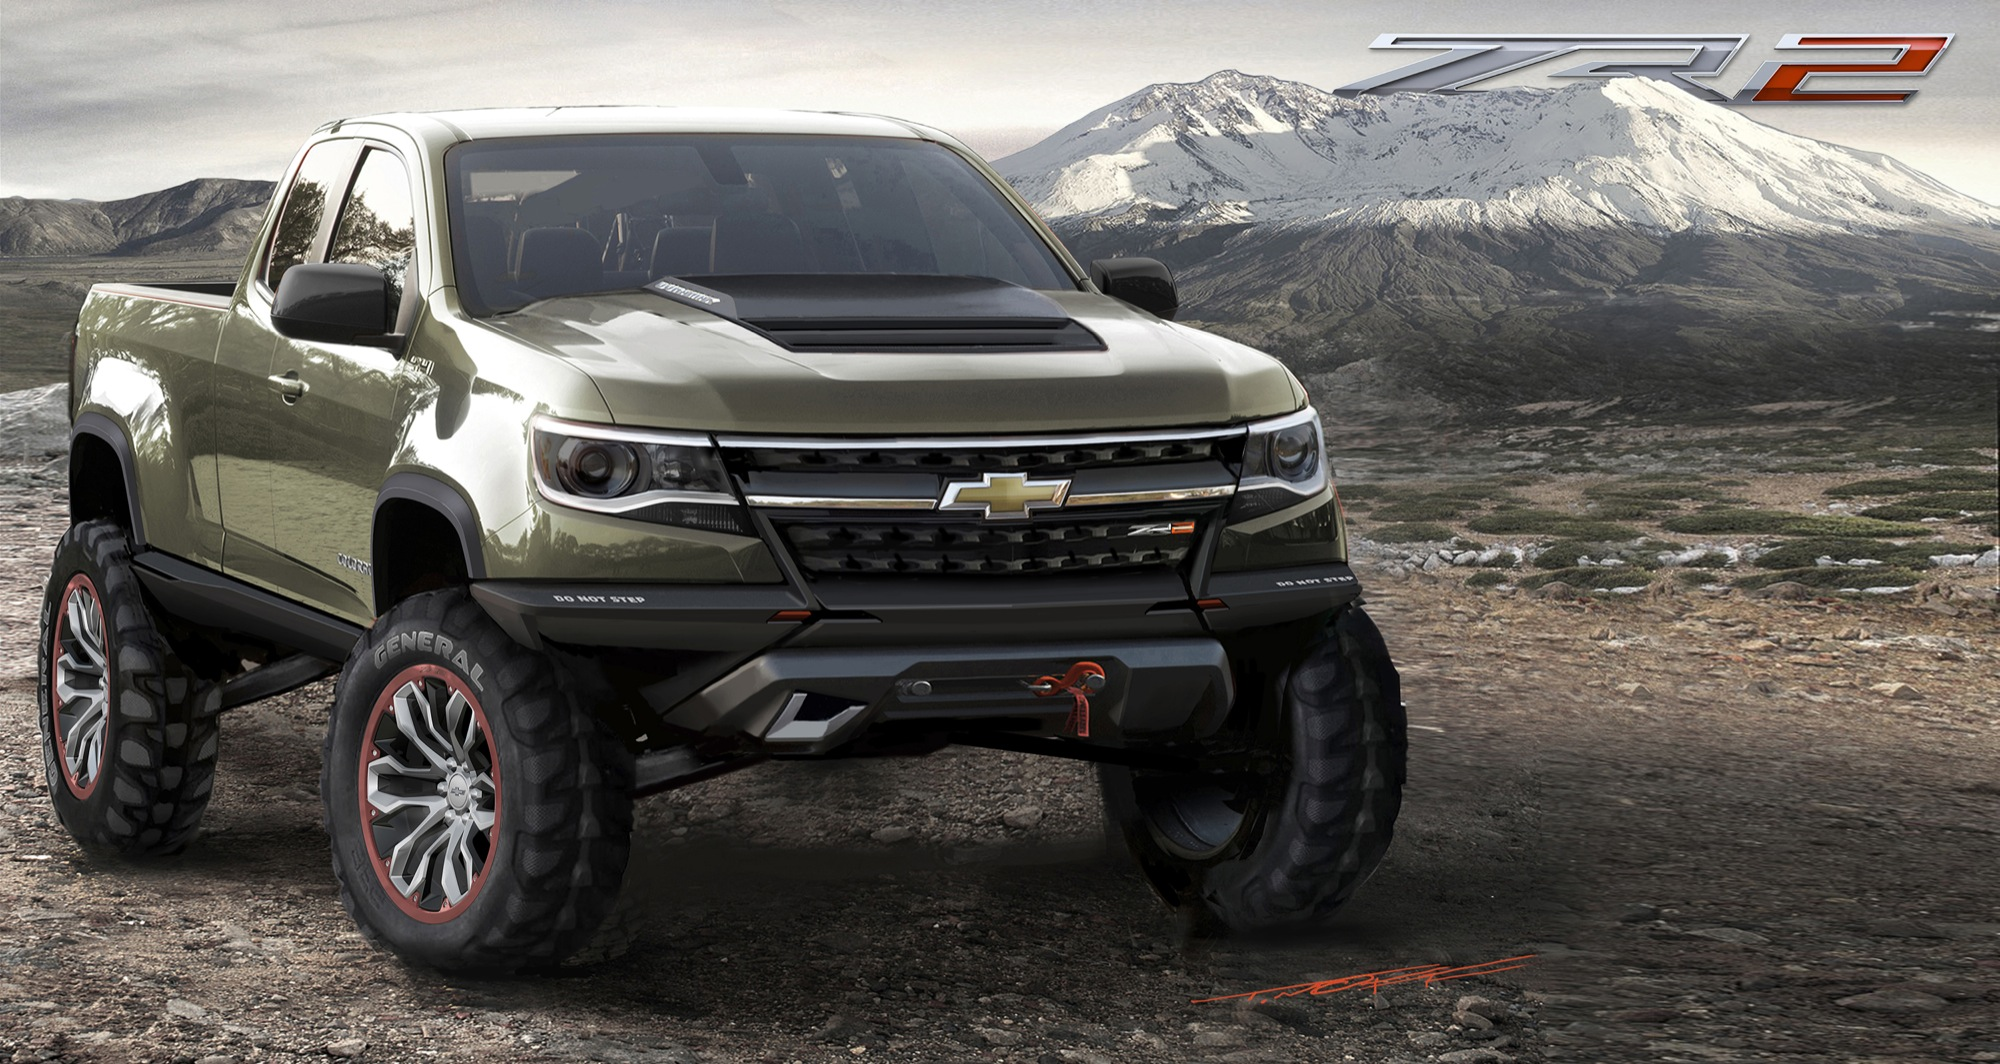 2015 chevy colorado zr2 to include duramax diesel gear heads. Black Bedroom Furniture Sets. Home Design Ideas